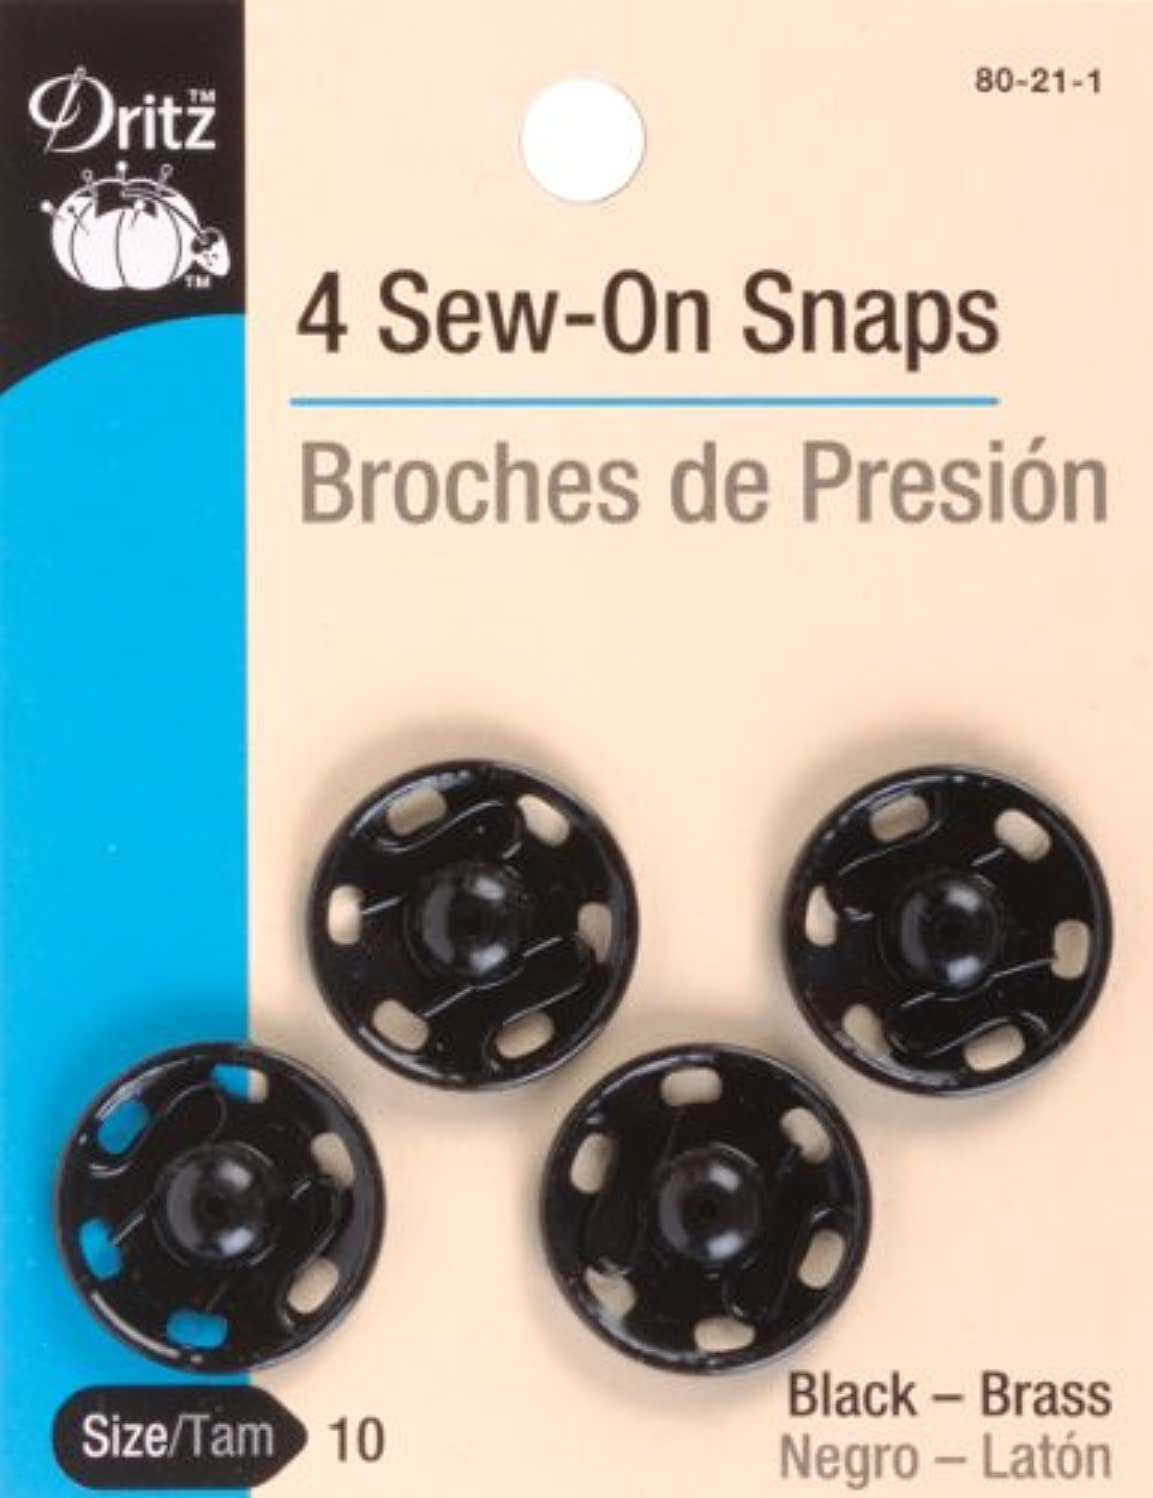 Dritz(R) Sew-On Snaps - Black